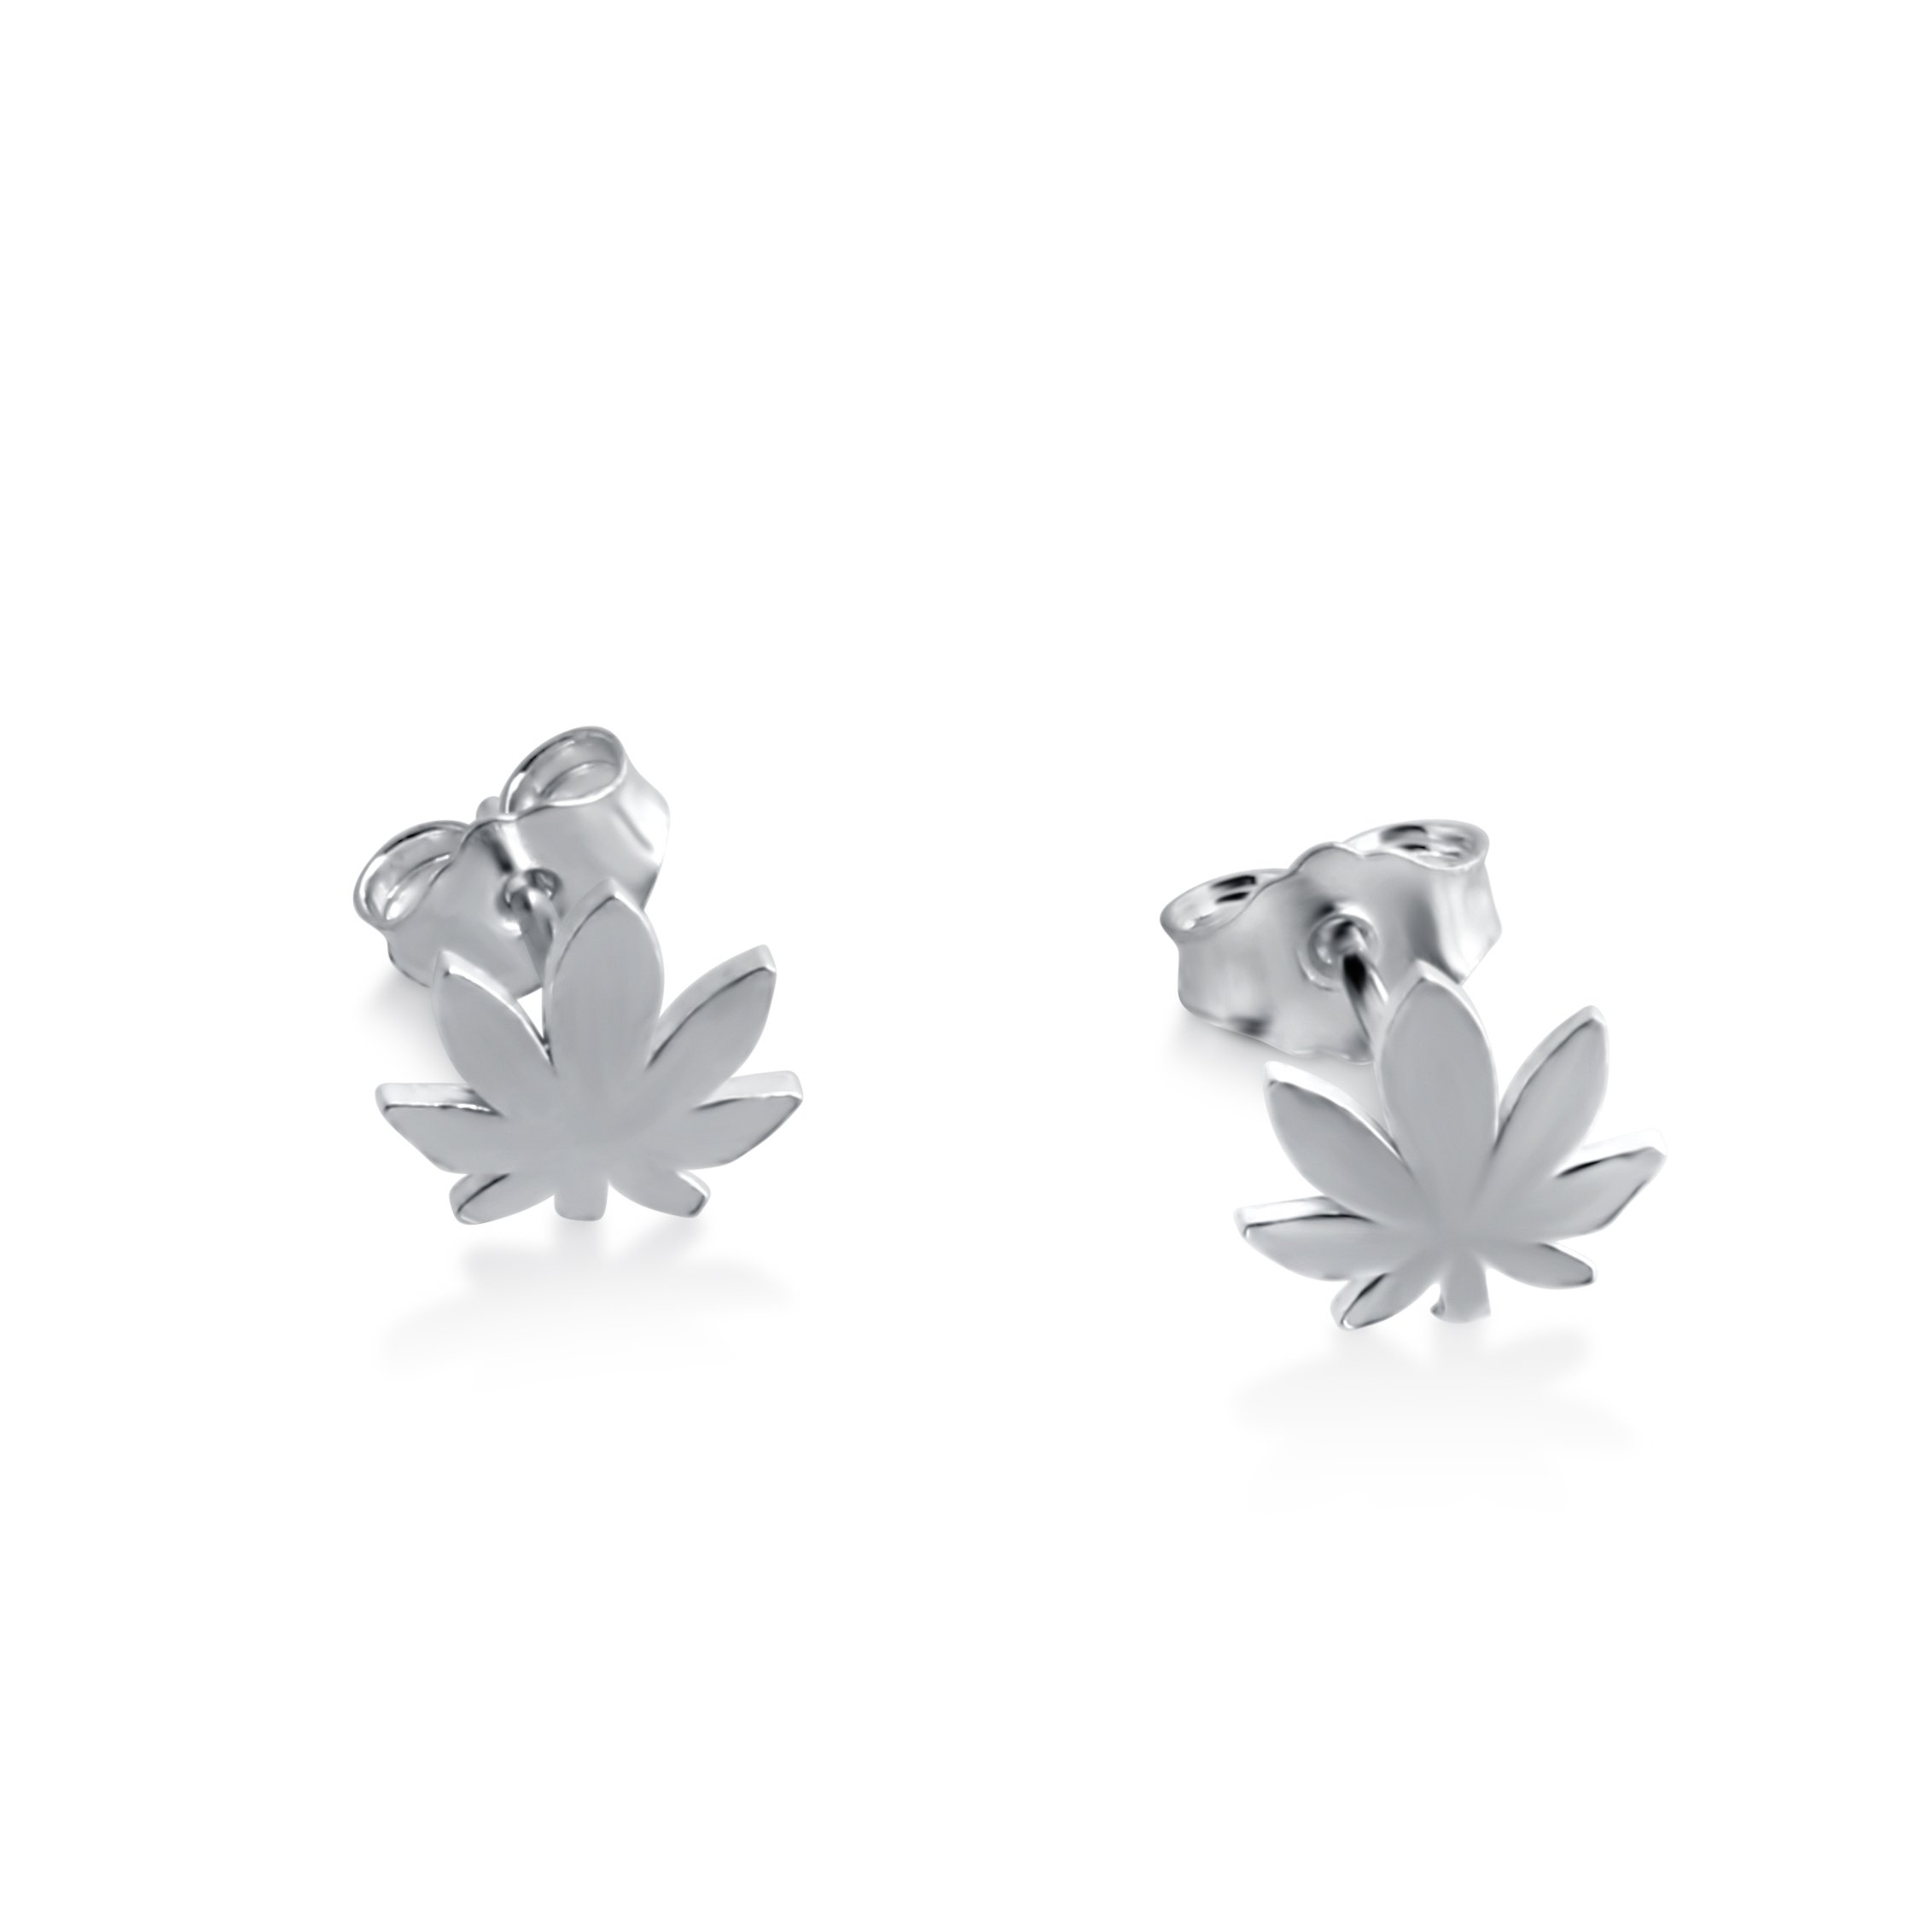 Azaggi Sterling Silver Handcrafted Cannabis Stud Earrings